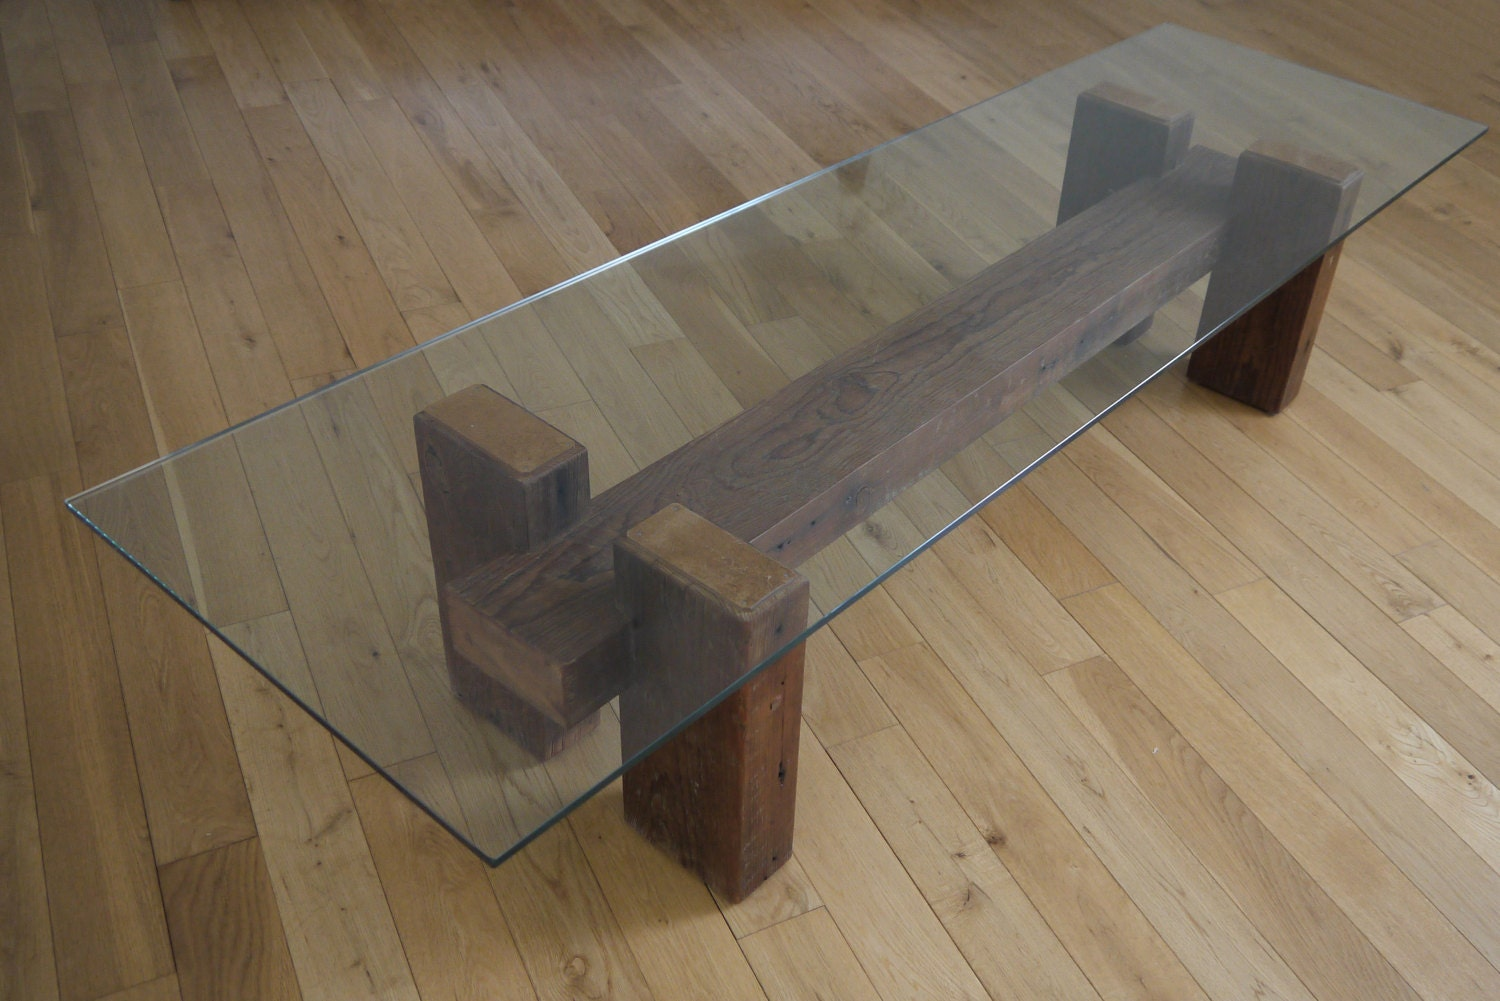 Wood And Glass Table Diy: Reclaimed Wood And Glass Coffee Table. Unique Coffee Table